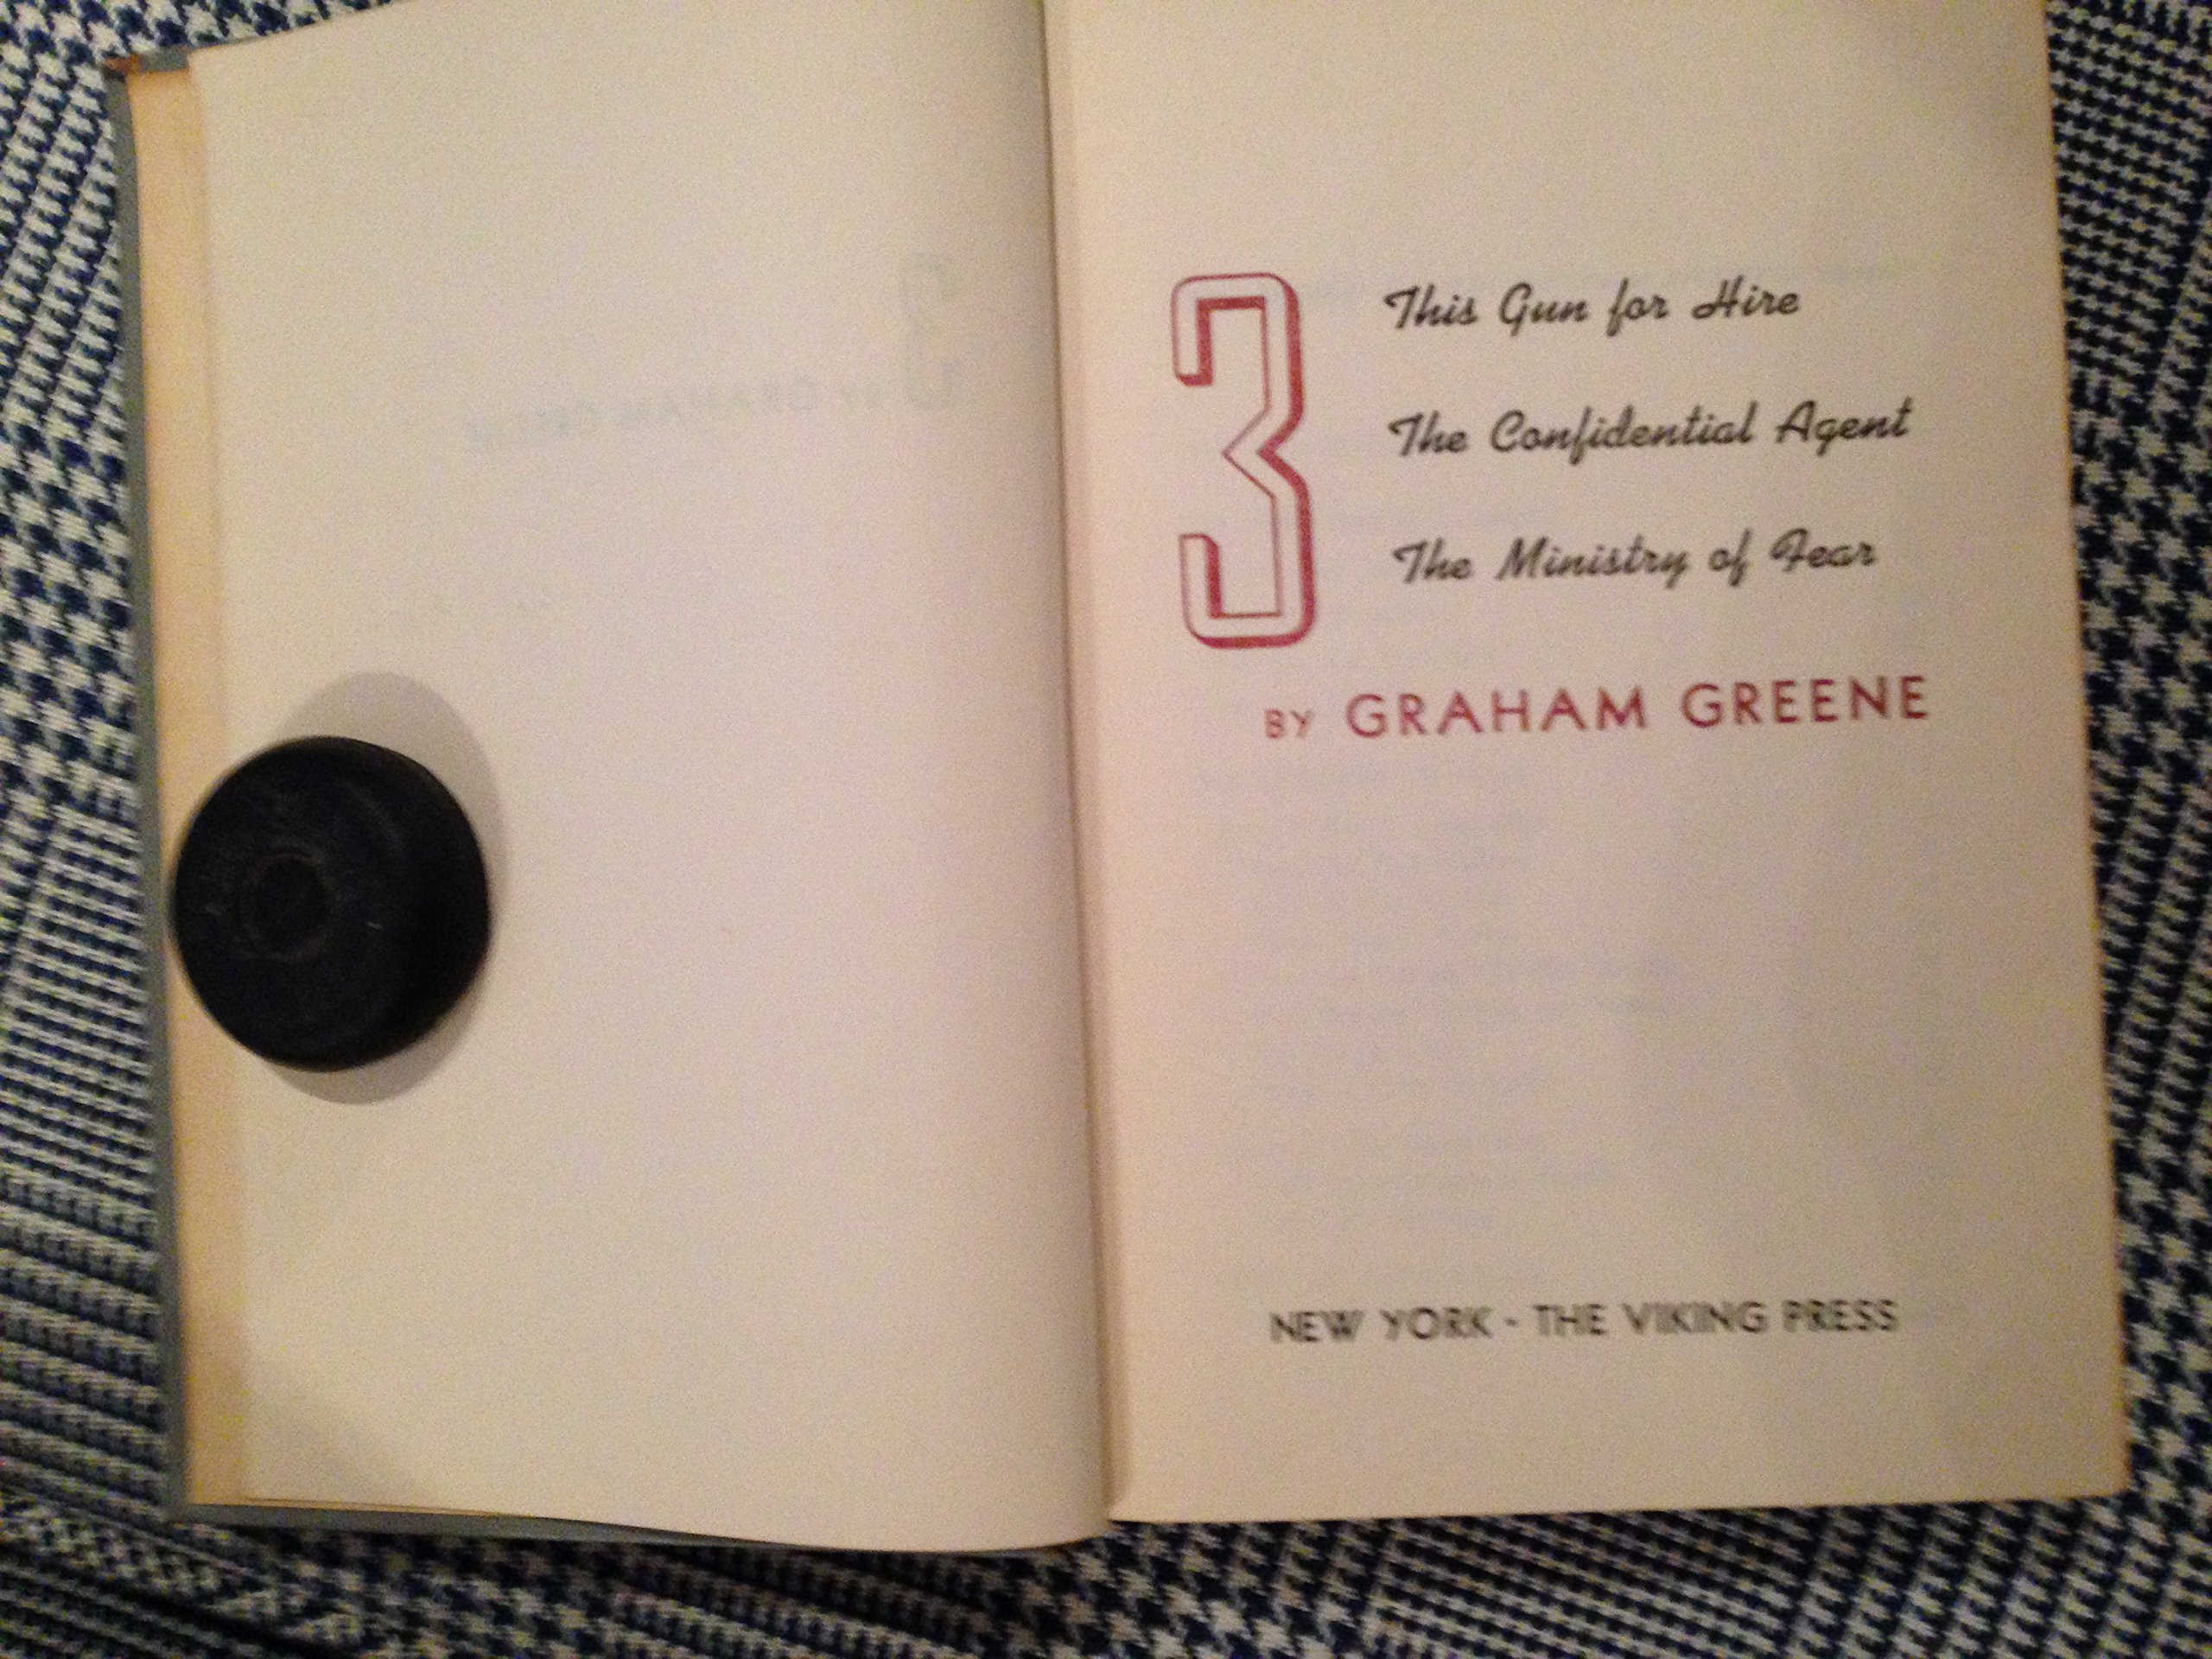 three by graham greene the ministry of fear the confidential